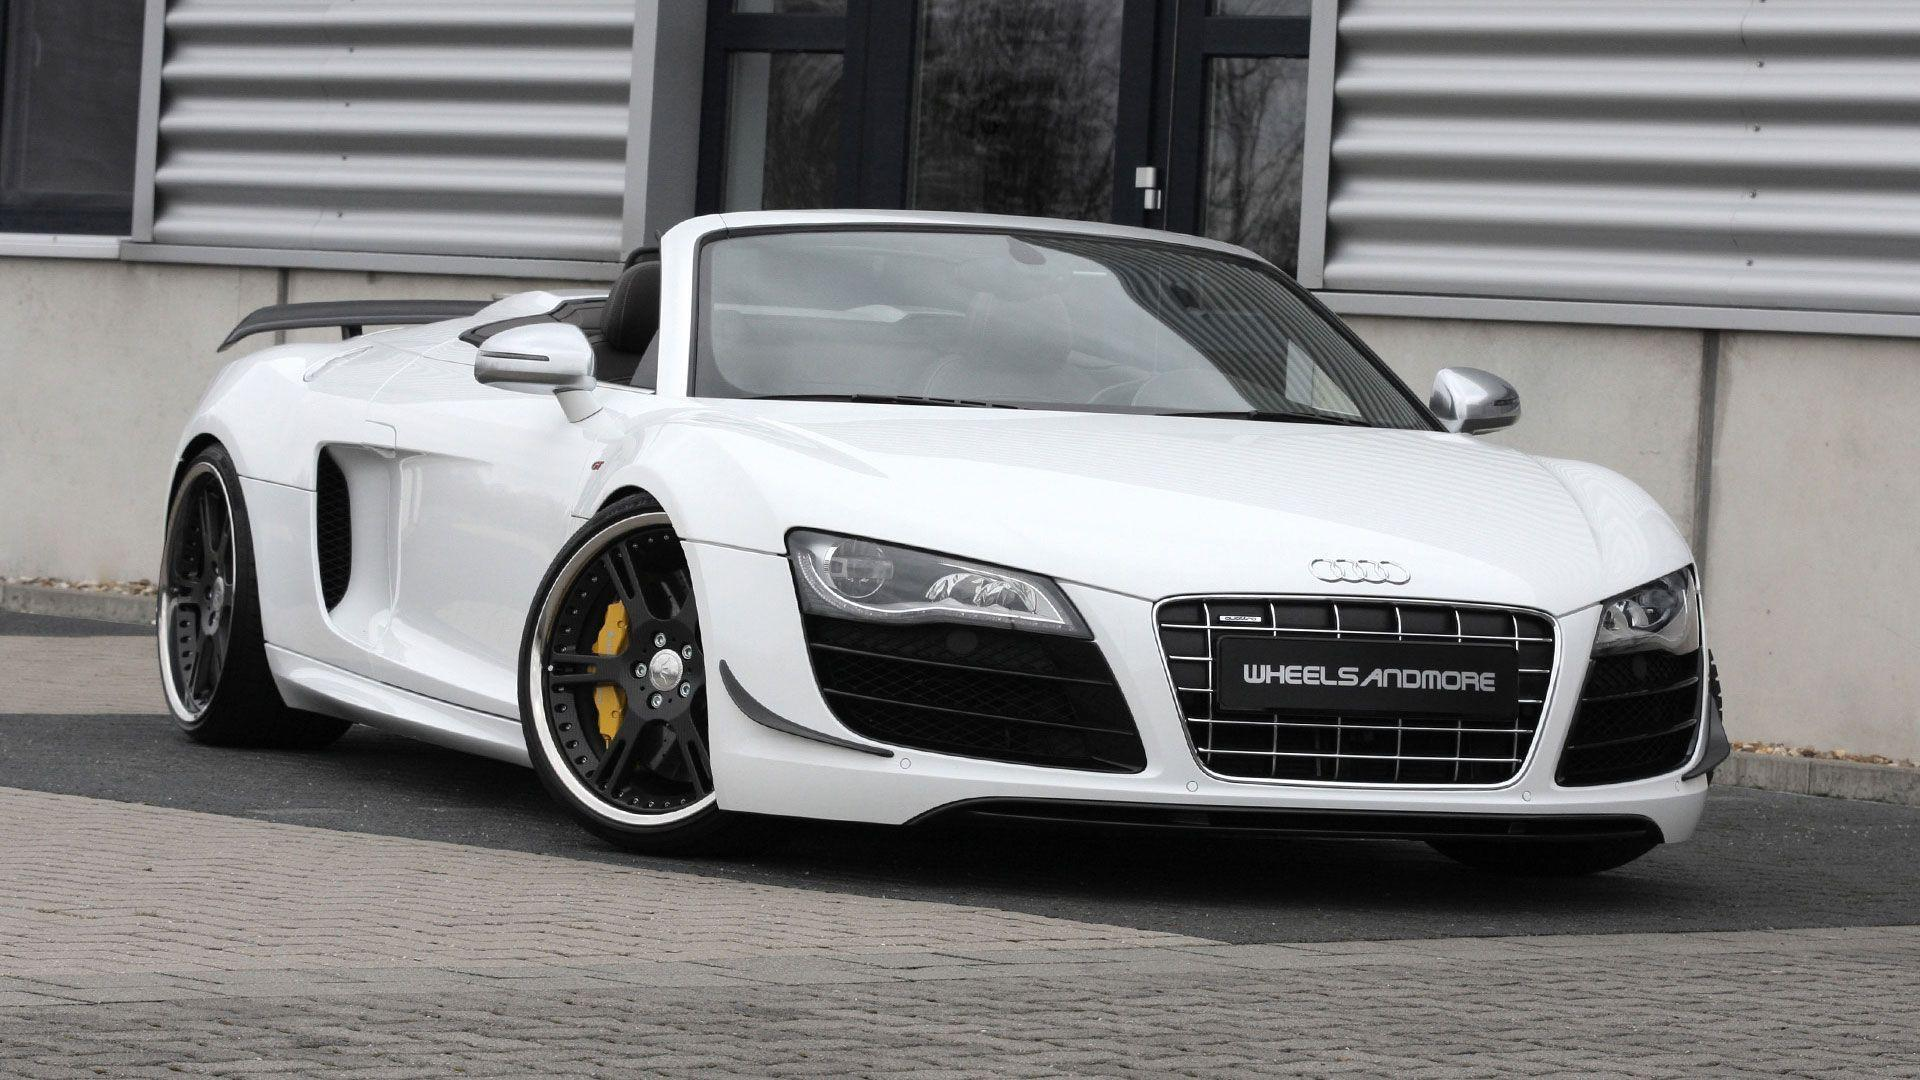 audi r8 spyder 2015 wallpapers wallpaper cave. Black Bedroom Furniture Sets. Home Design Ideas